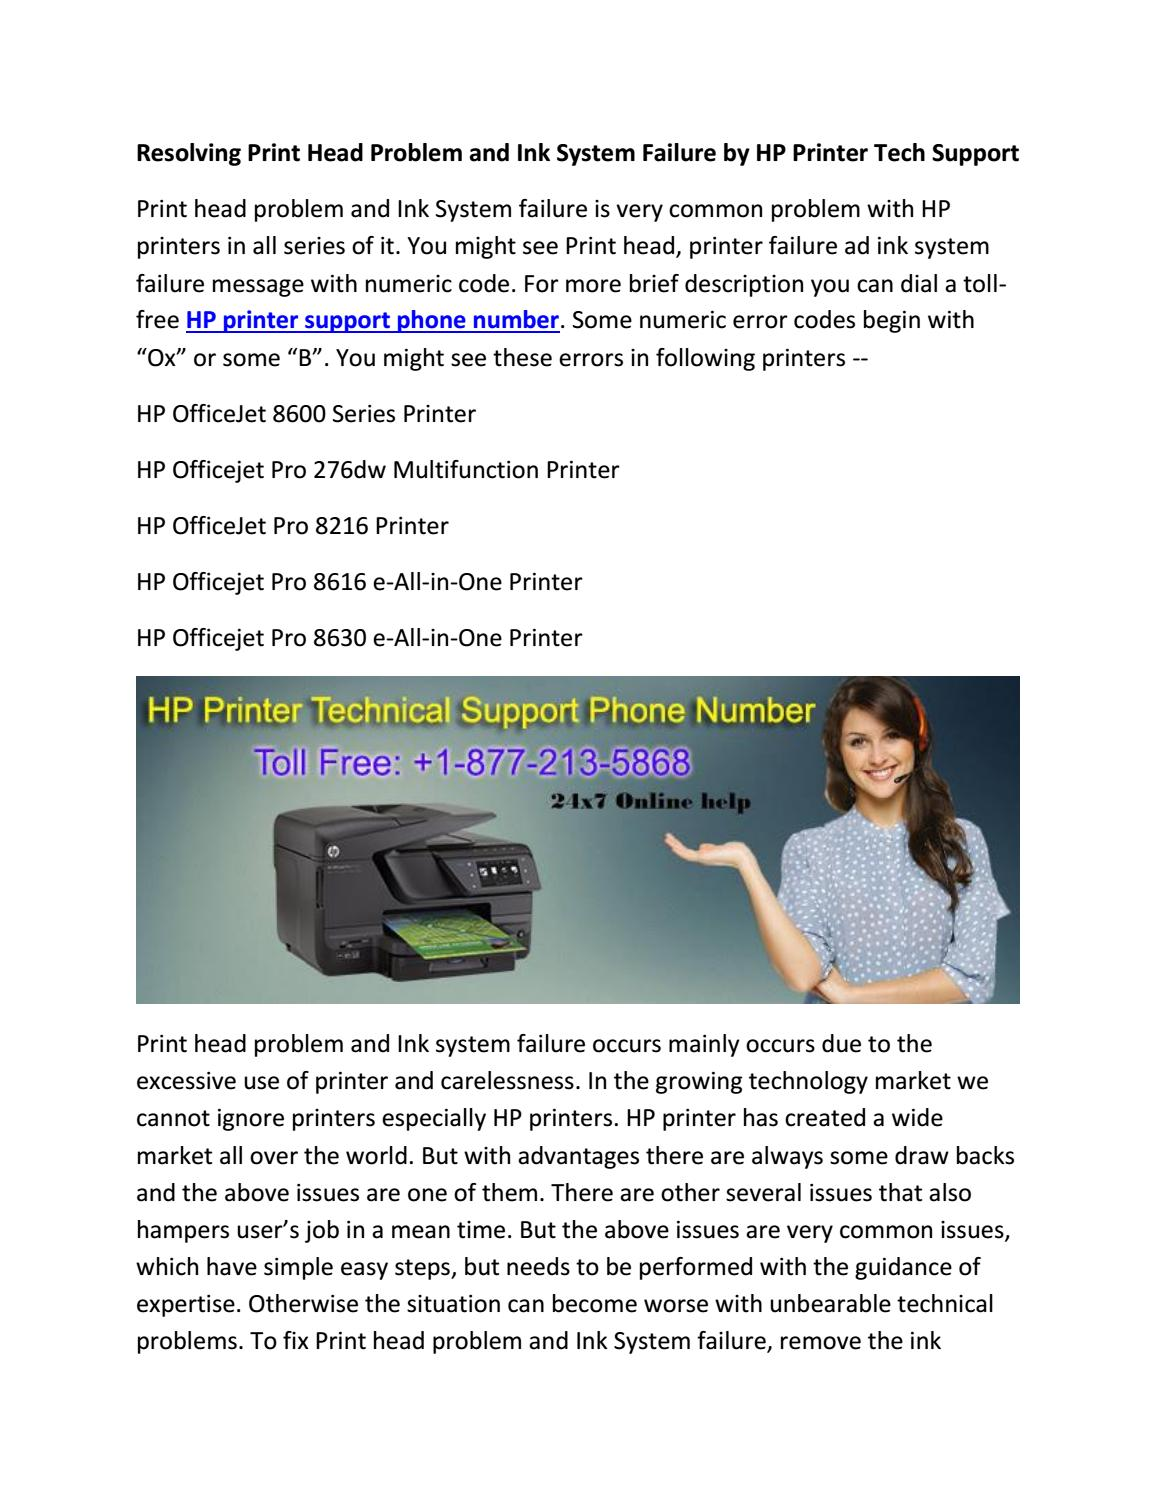 Resolving print head problem and ink system failure by hp printer